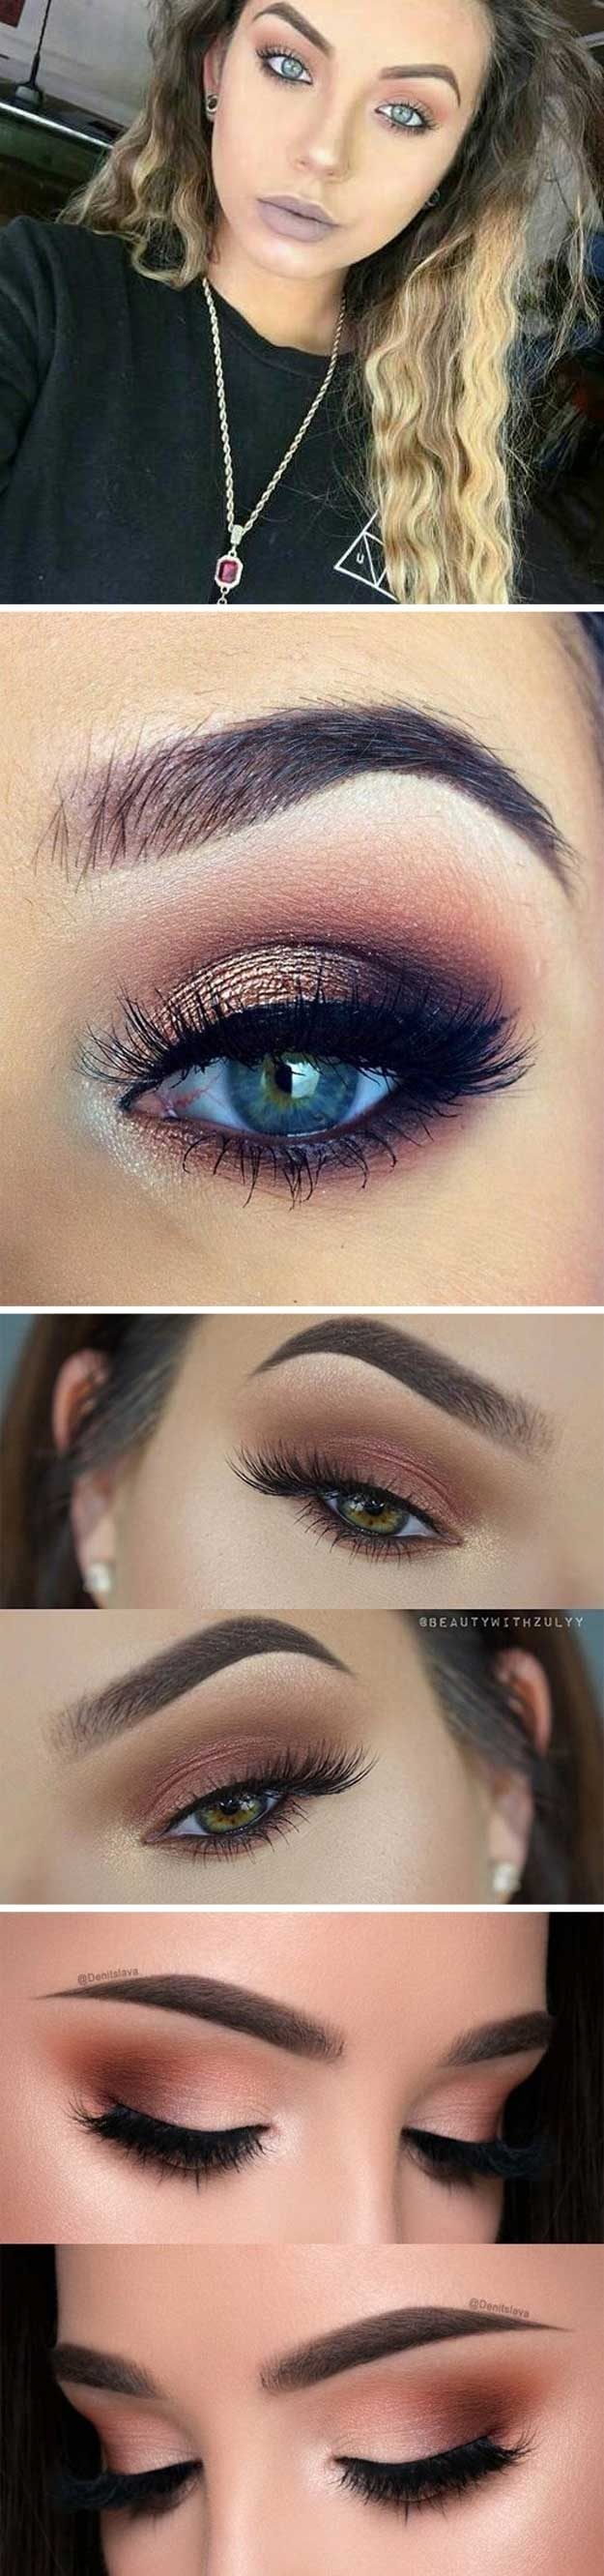 Wedding Makeup For Green Eyes Makeup Tips For Blue Green Eyes And Light Brown Hair Wavy Haircut